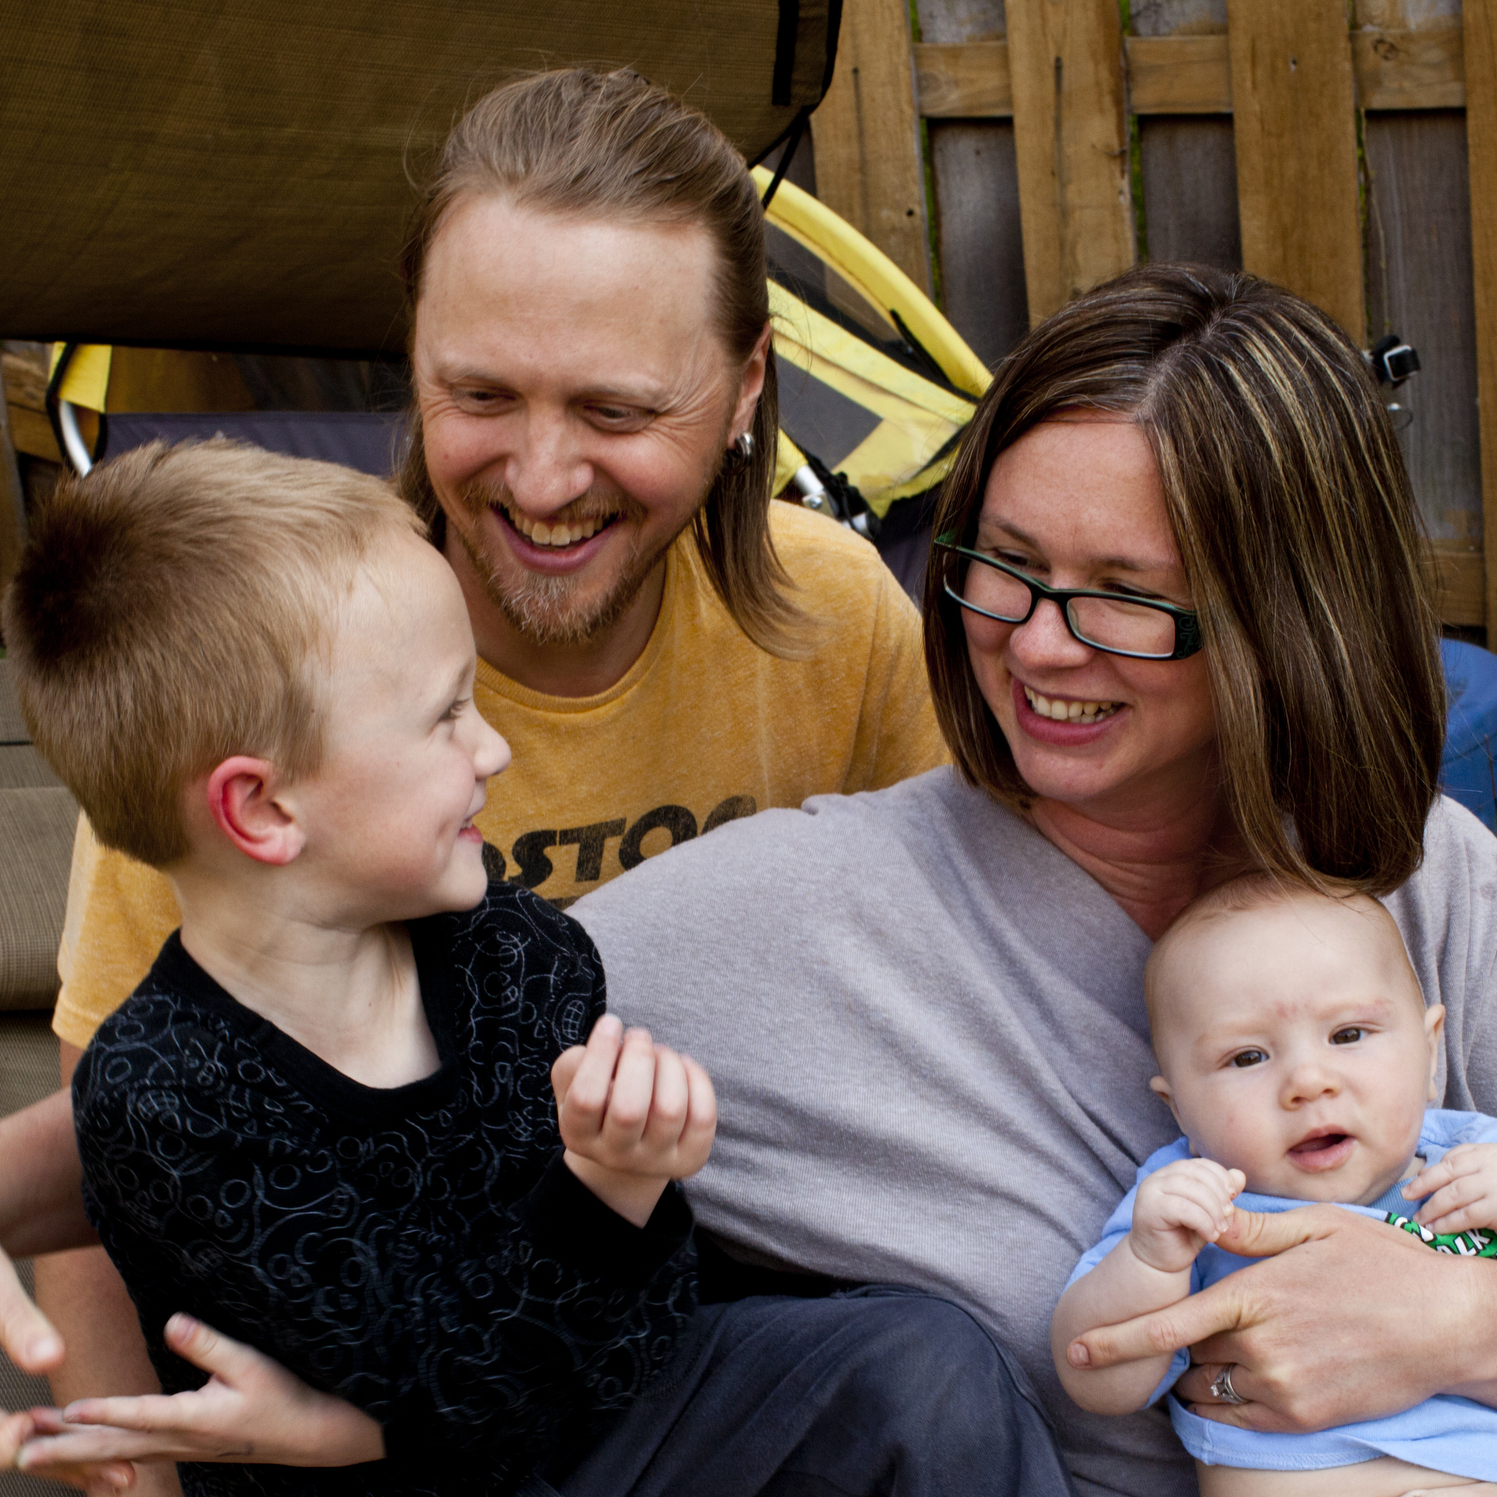 Jonathan and Dawn Heisey-Grove with their two sons Egan, 5, and Zane, 4 months, at their home in Alexandria, Va.